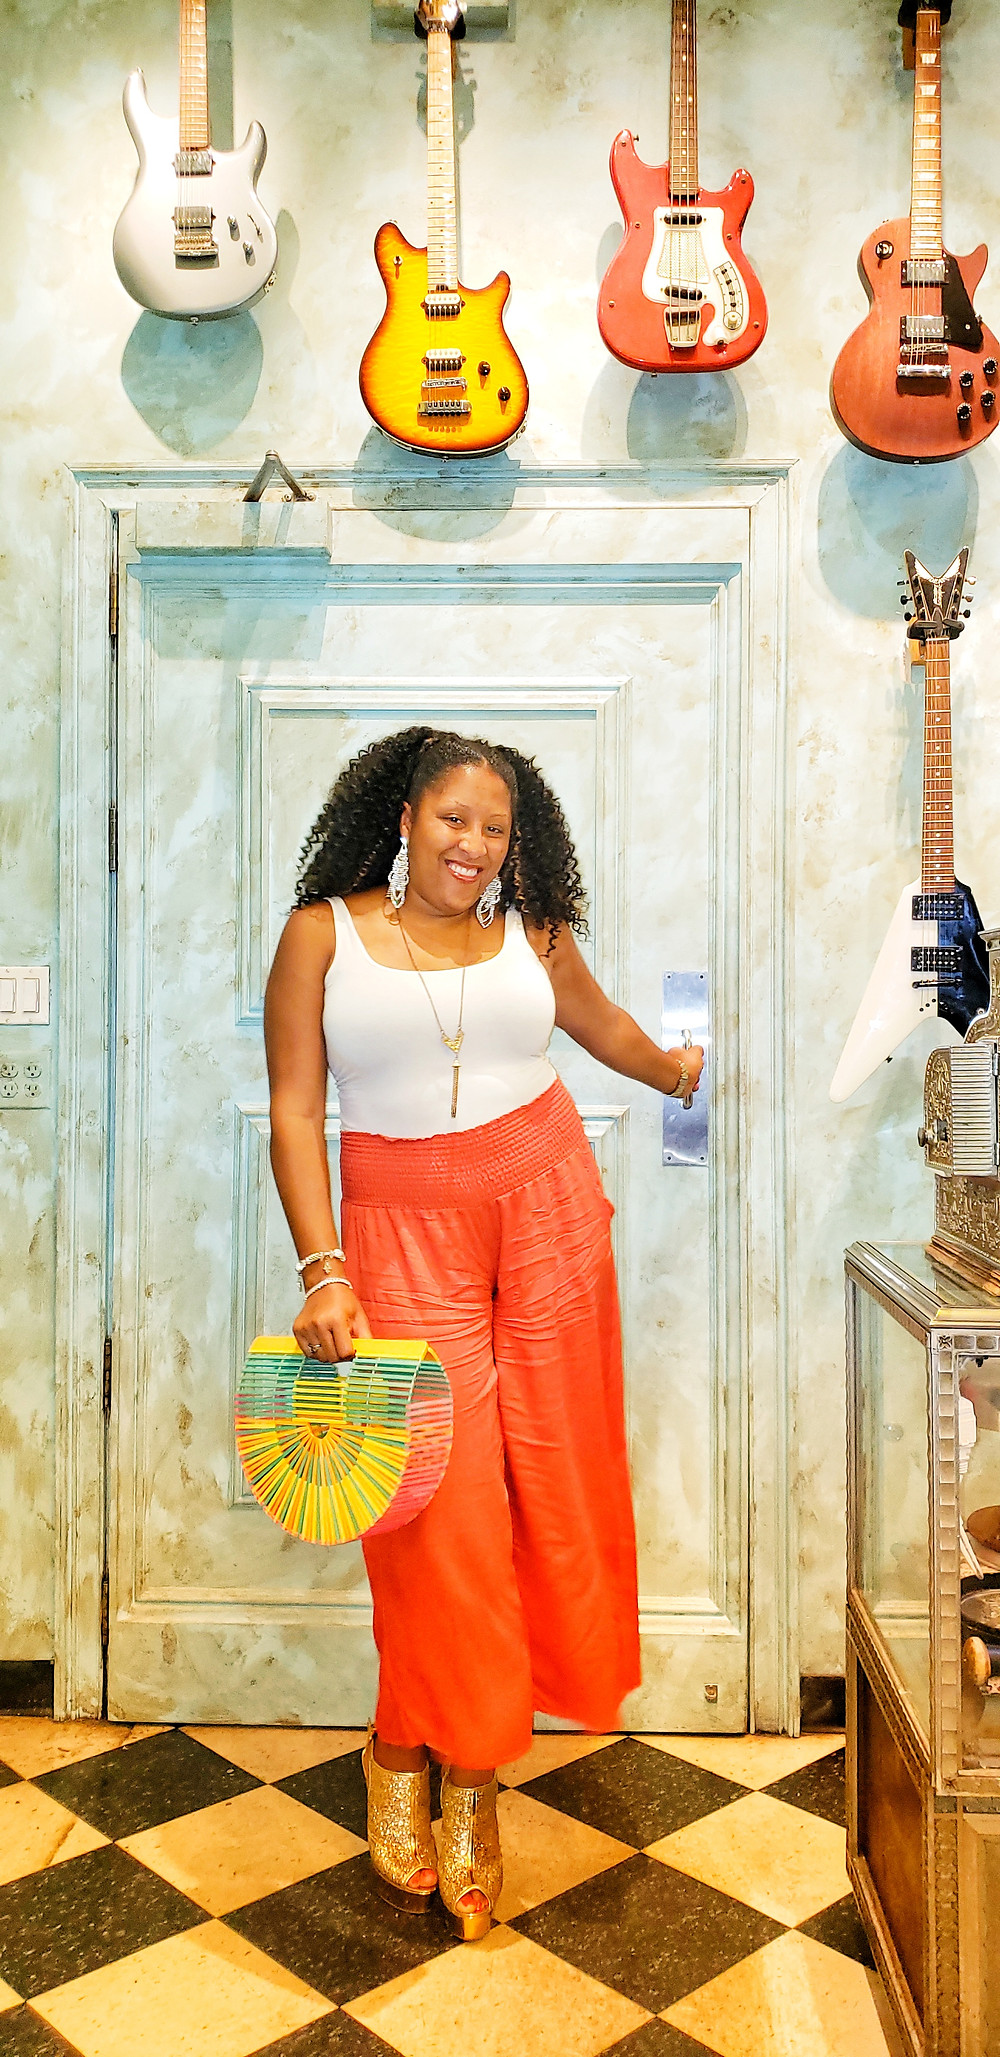 Woman standing in front of a blue door with guitars above